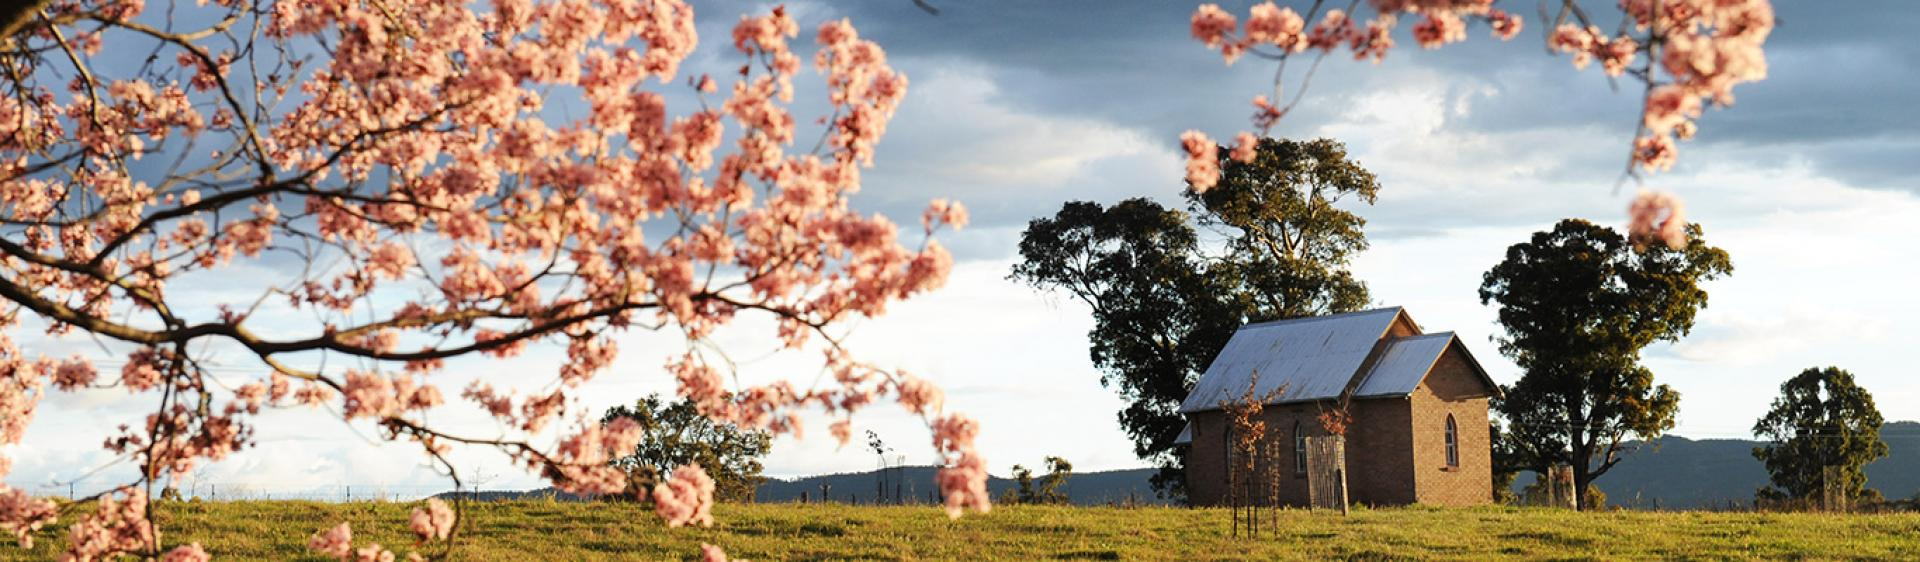 Blossoms in the Mudgee region, Country NSW